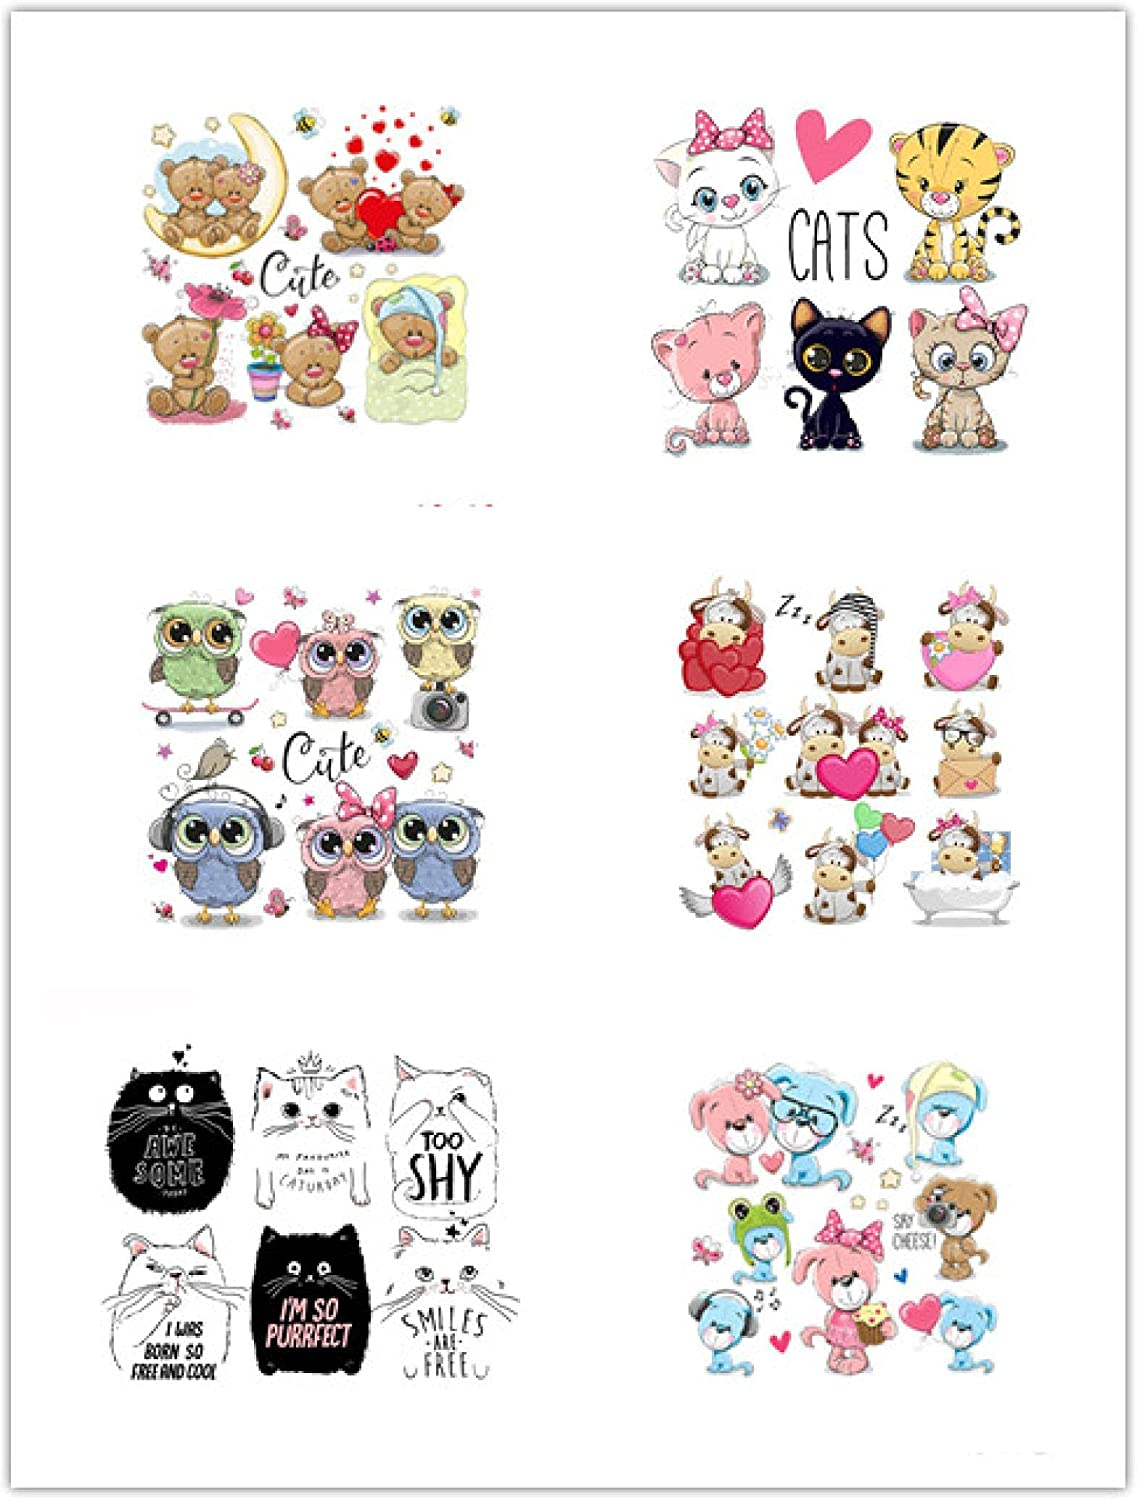 6pcs Heat Transfer Stickers Selling and selling for shipfree Bags Clothing A-L Jeans T-Shirt